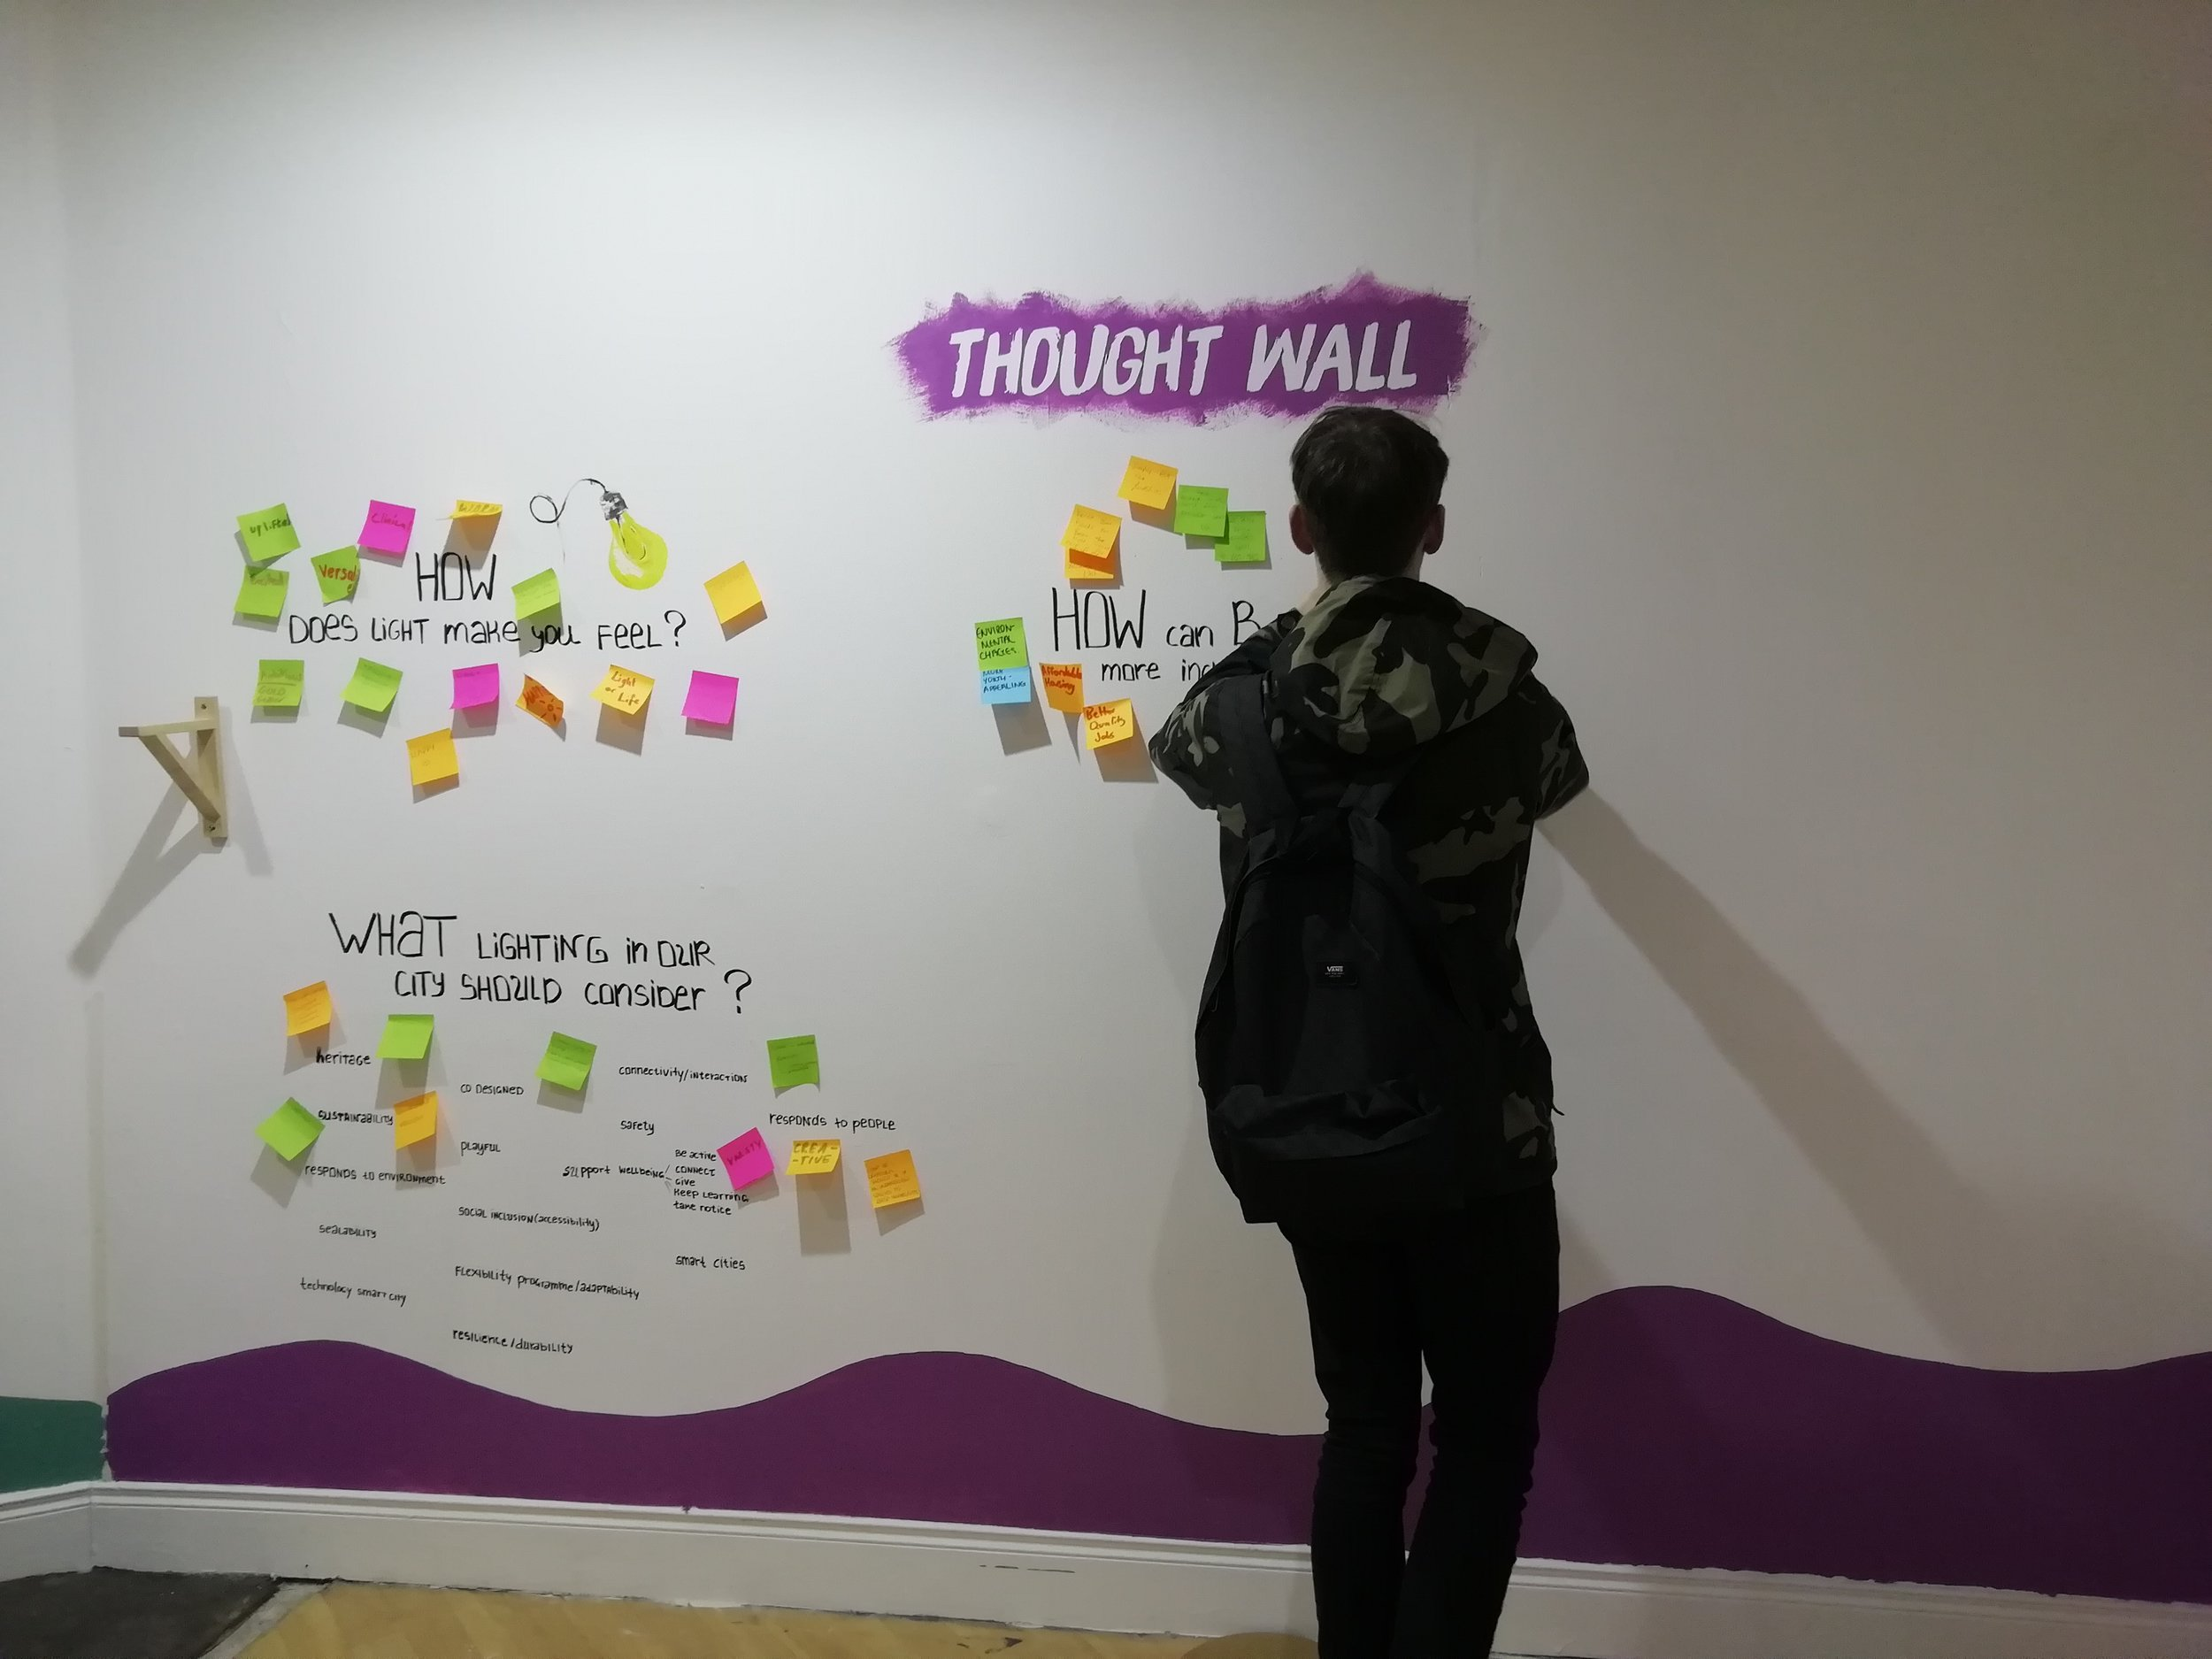 Participating on the thought wall